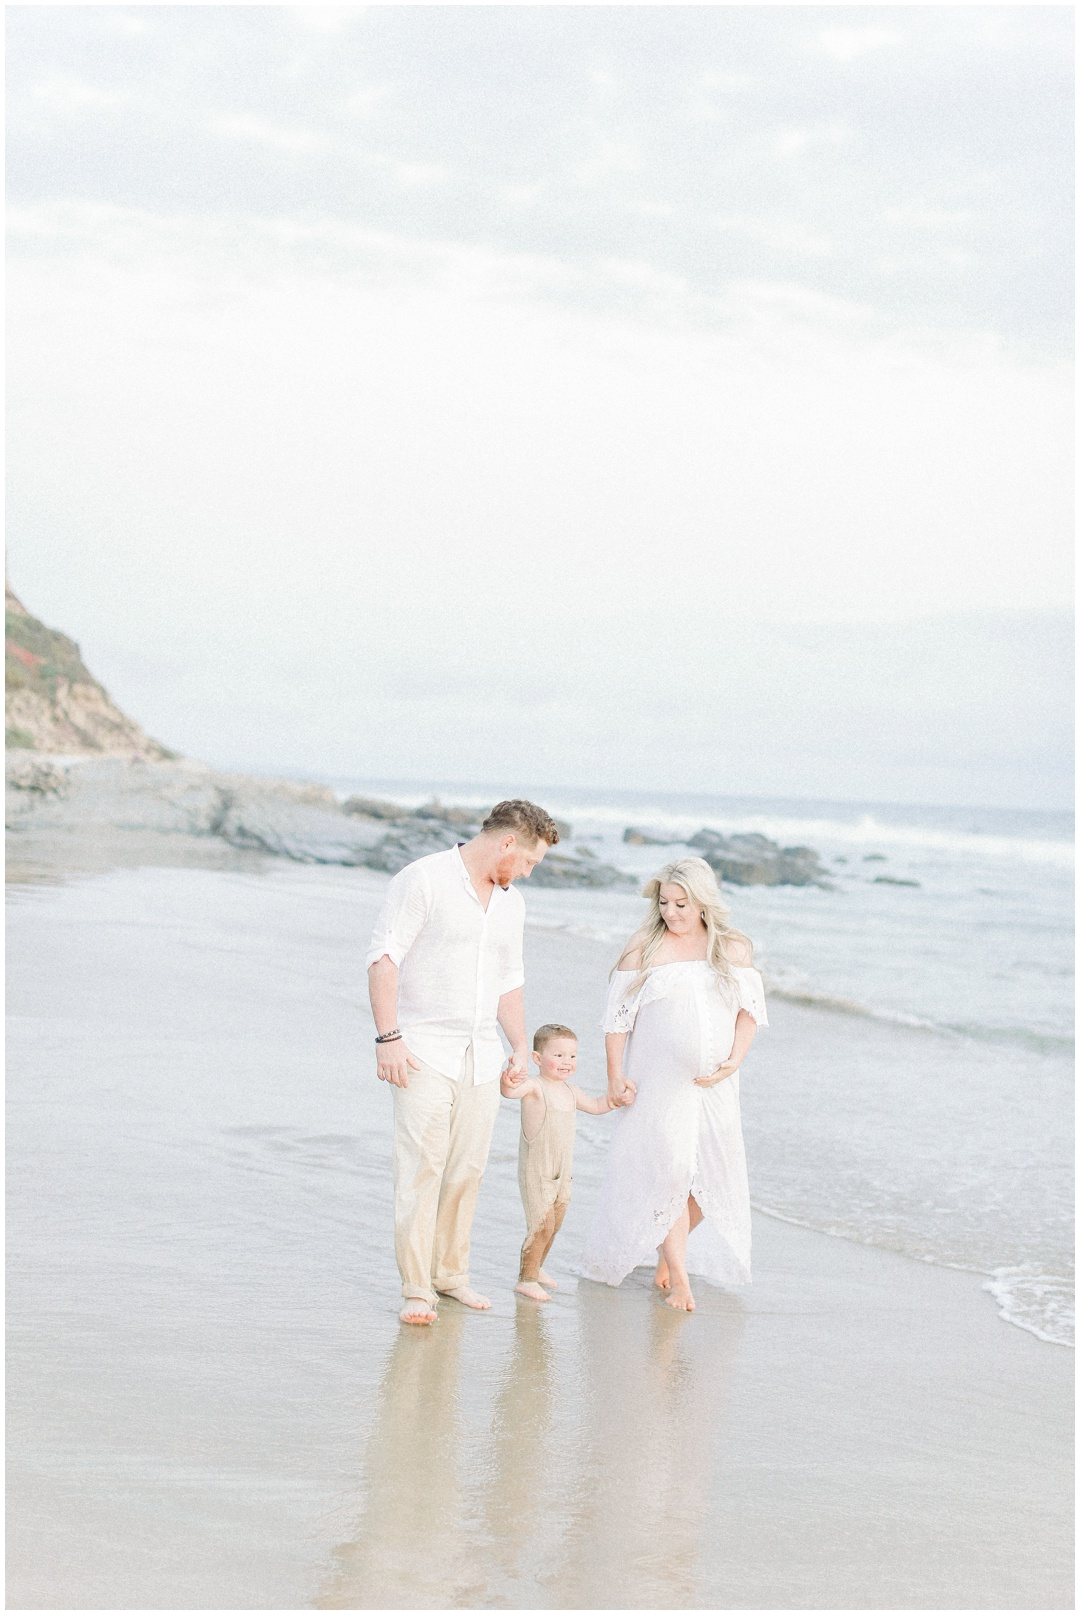 Newport_Beach_Newborn_Light_Airy_Natural_Photographer_Newport_Beach_Photographer_Orange_County_Family_Photographer_Cori_Kleckner_Photography_Newport_Beach_Photographer_Maternity_kole_calhoun56_kole_calhoun_Jennifer_Calhoun_Knox_Calhoun_3712.jpg